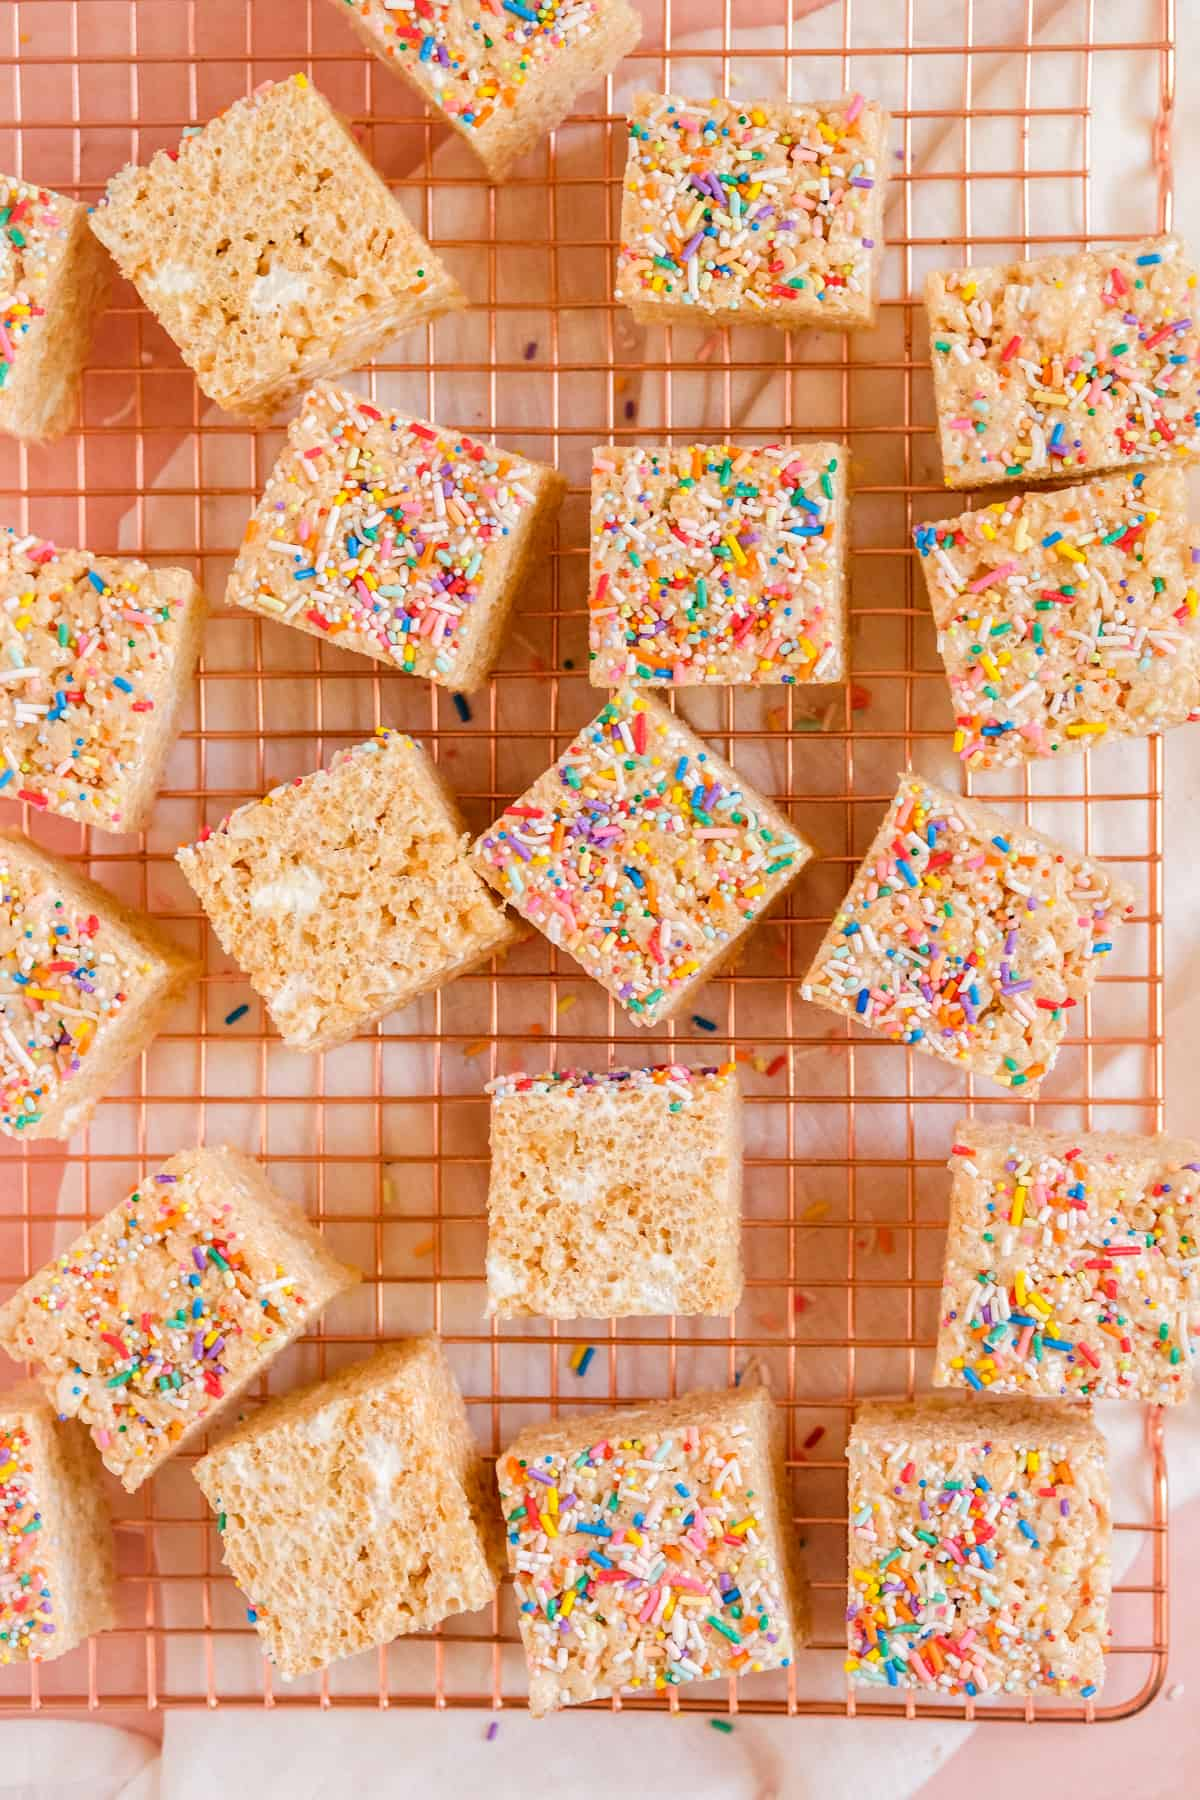 Brown Butter Rice Krispie Treats on a wire rack with sprinkles on top and some on the sides